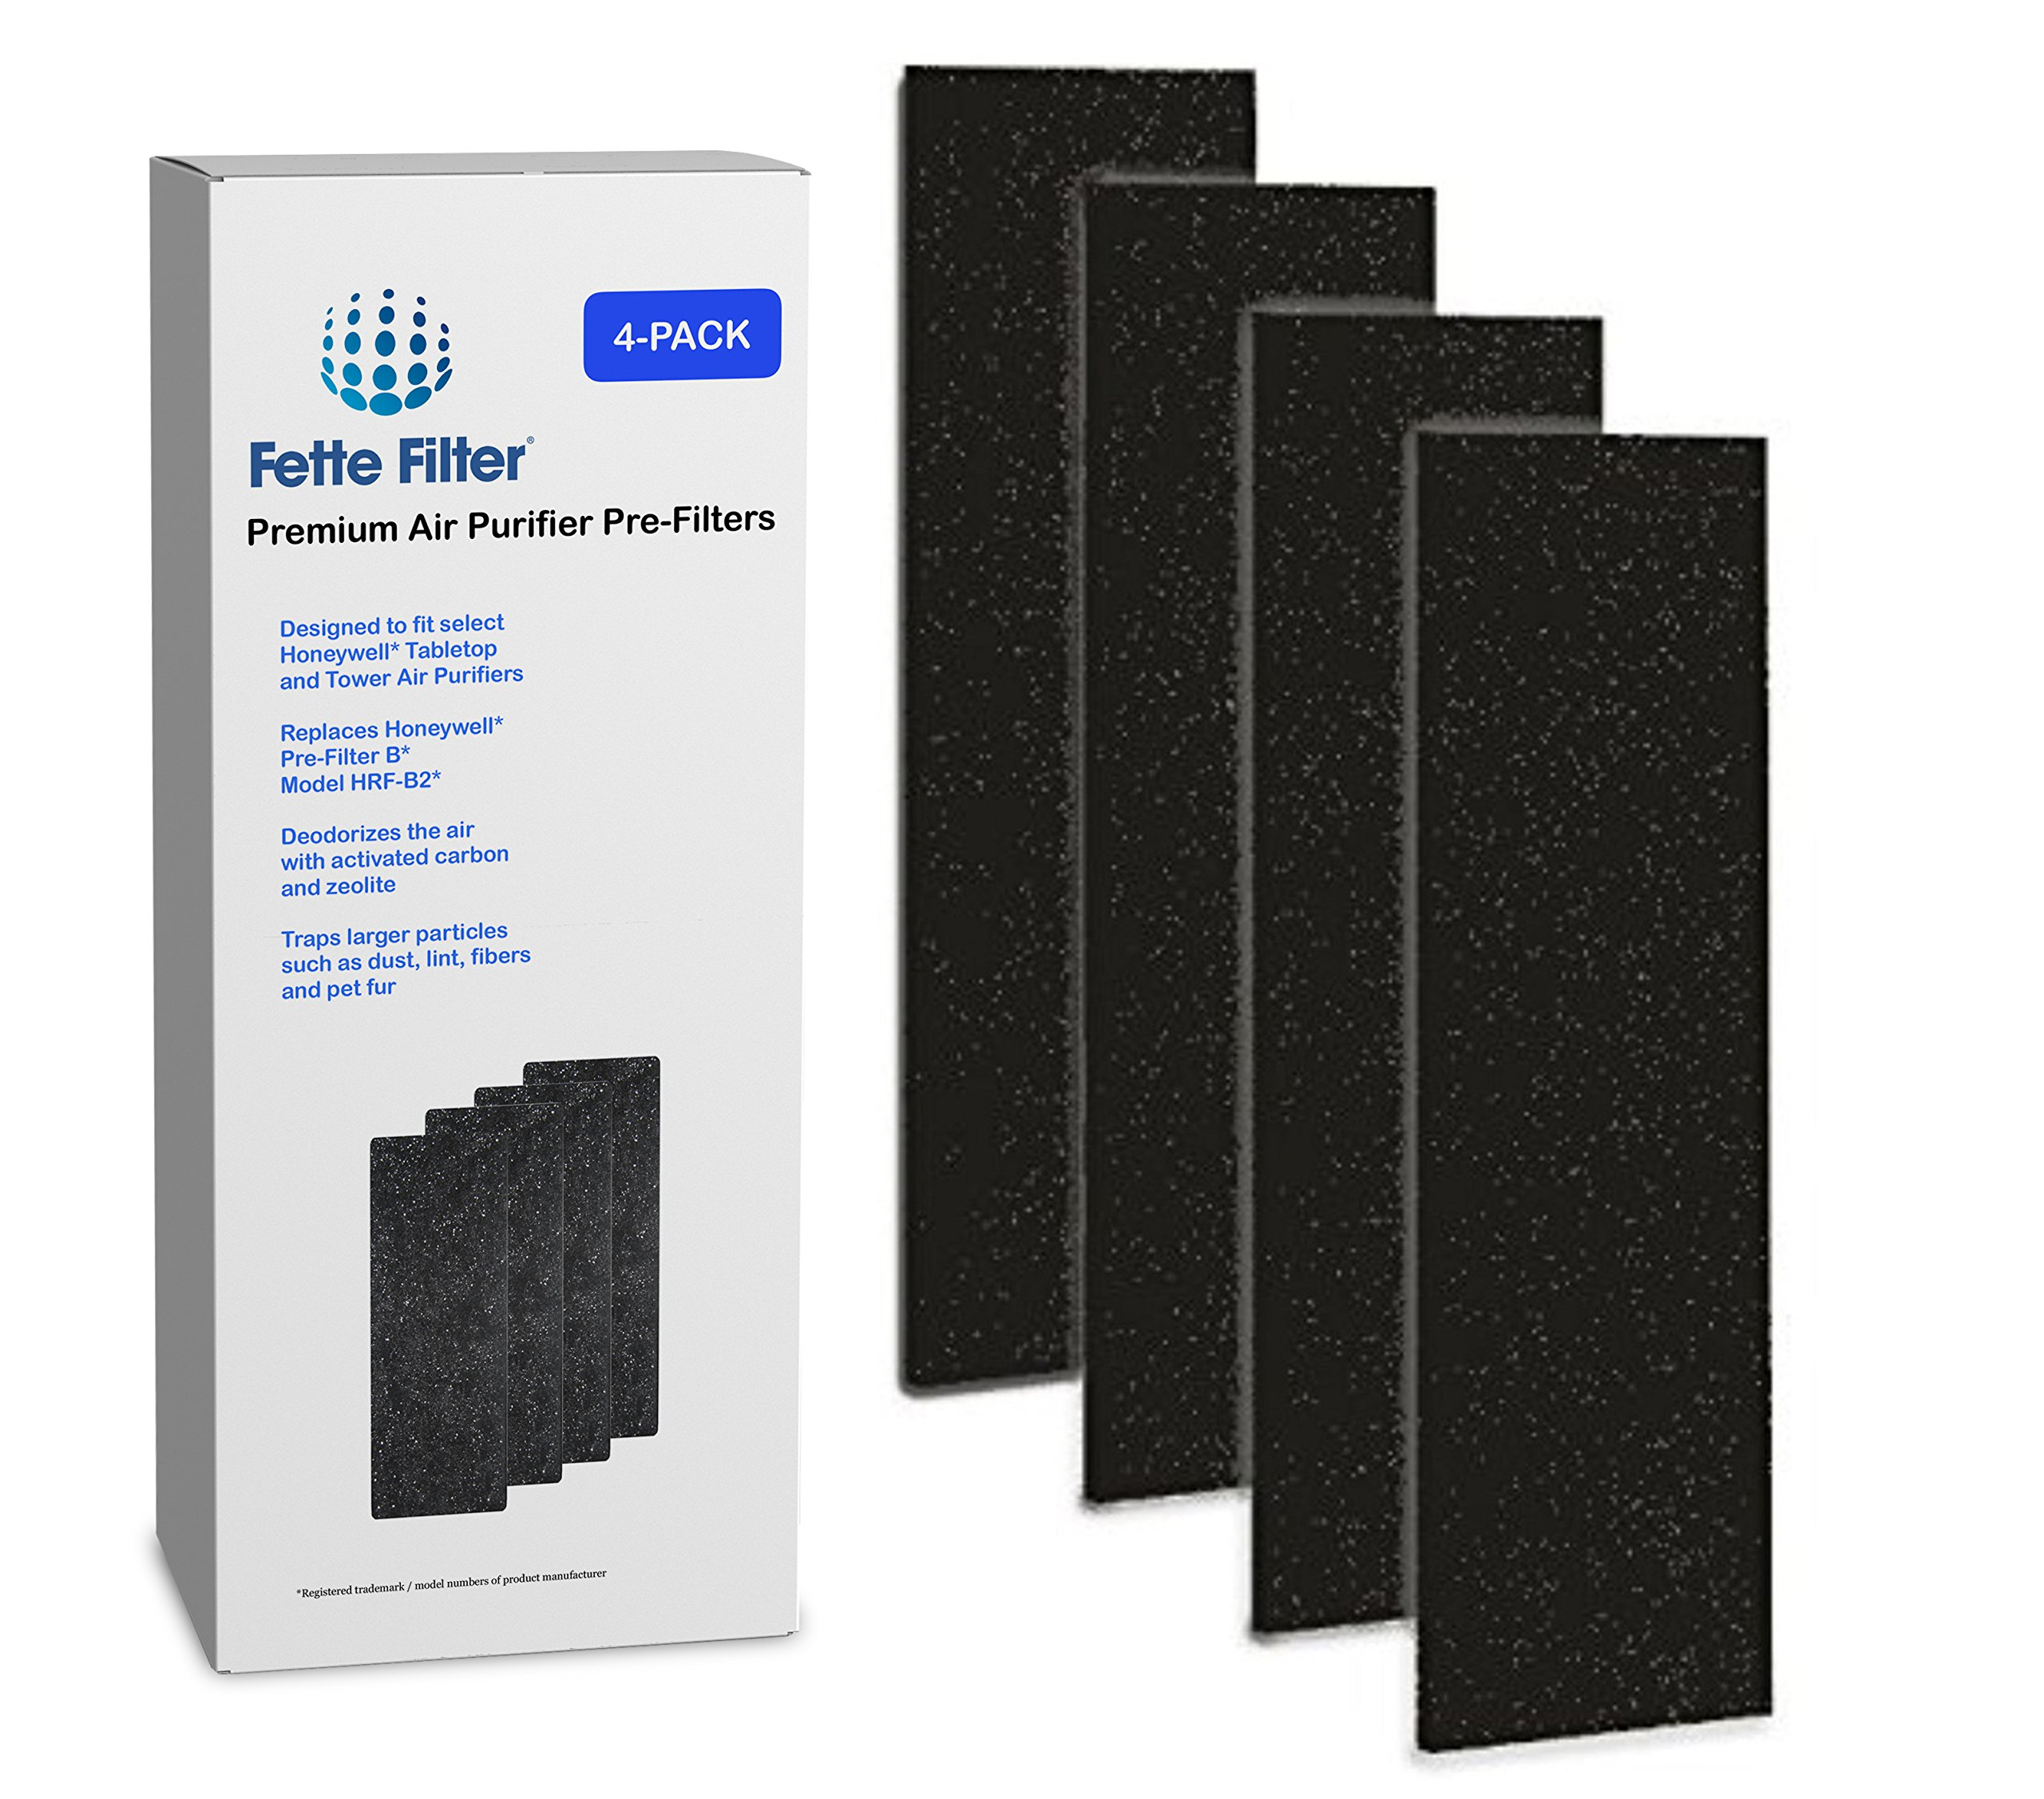 Fette Filter 4-Pack Air Purifier Pre-Filters. Compatible with HRF-B2 and HRF-B1 Filter B.